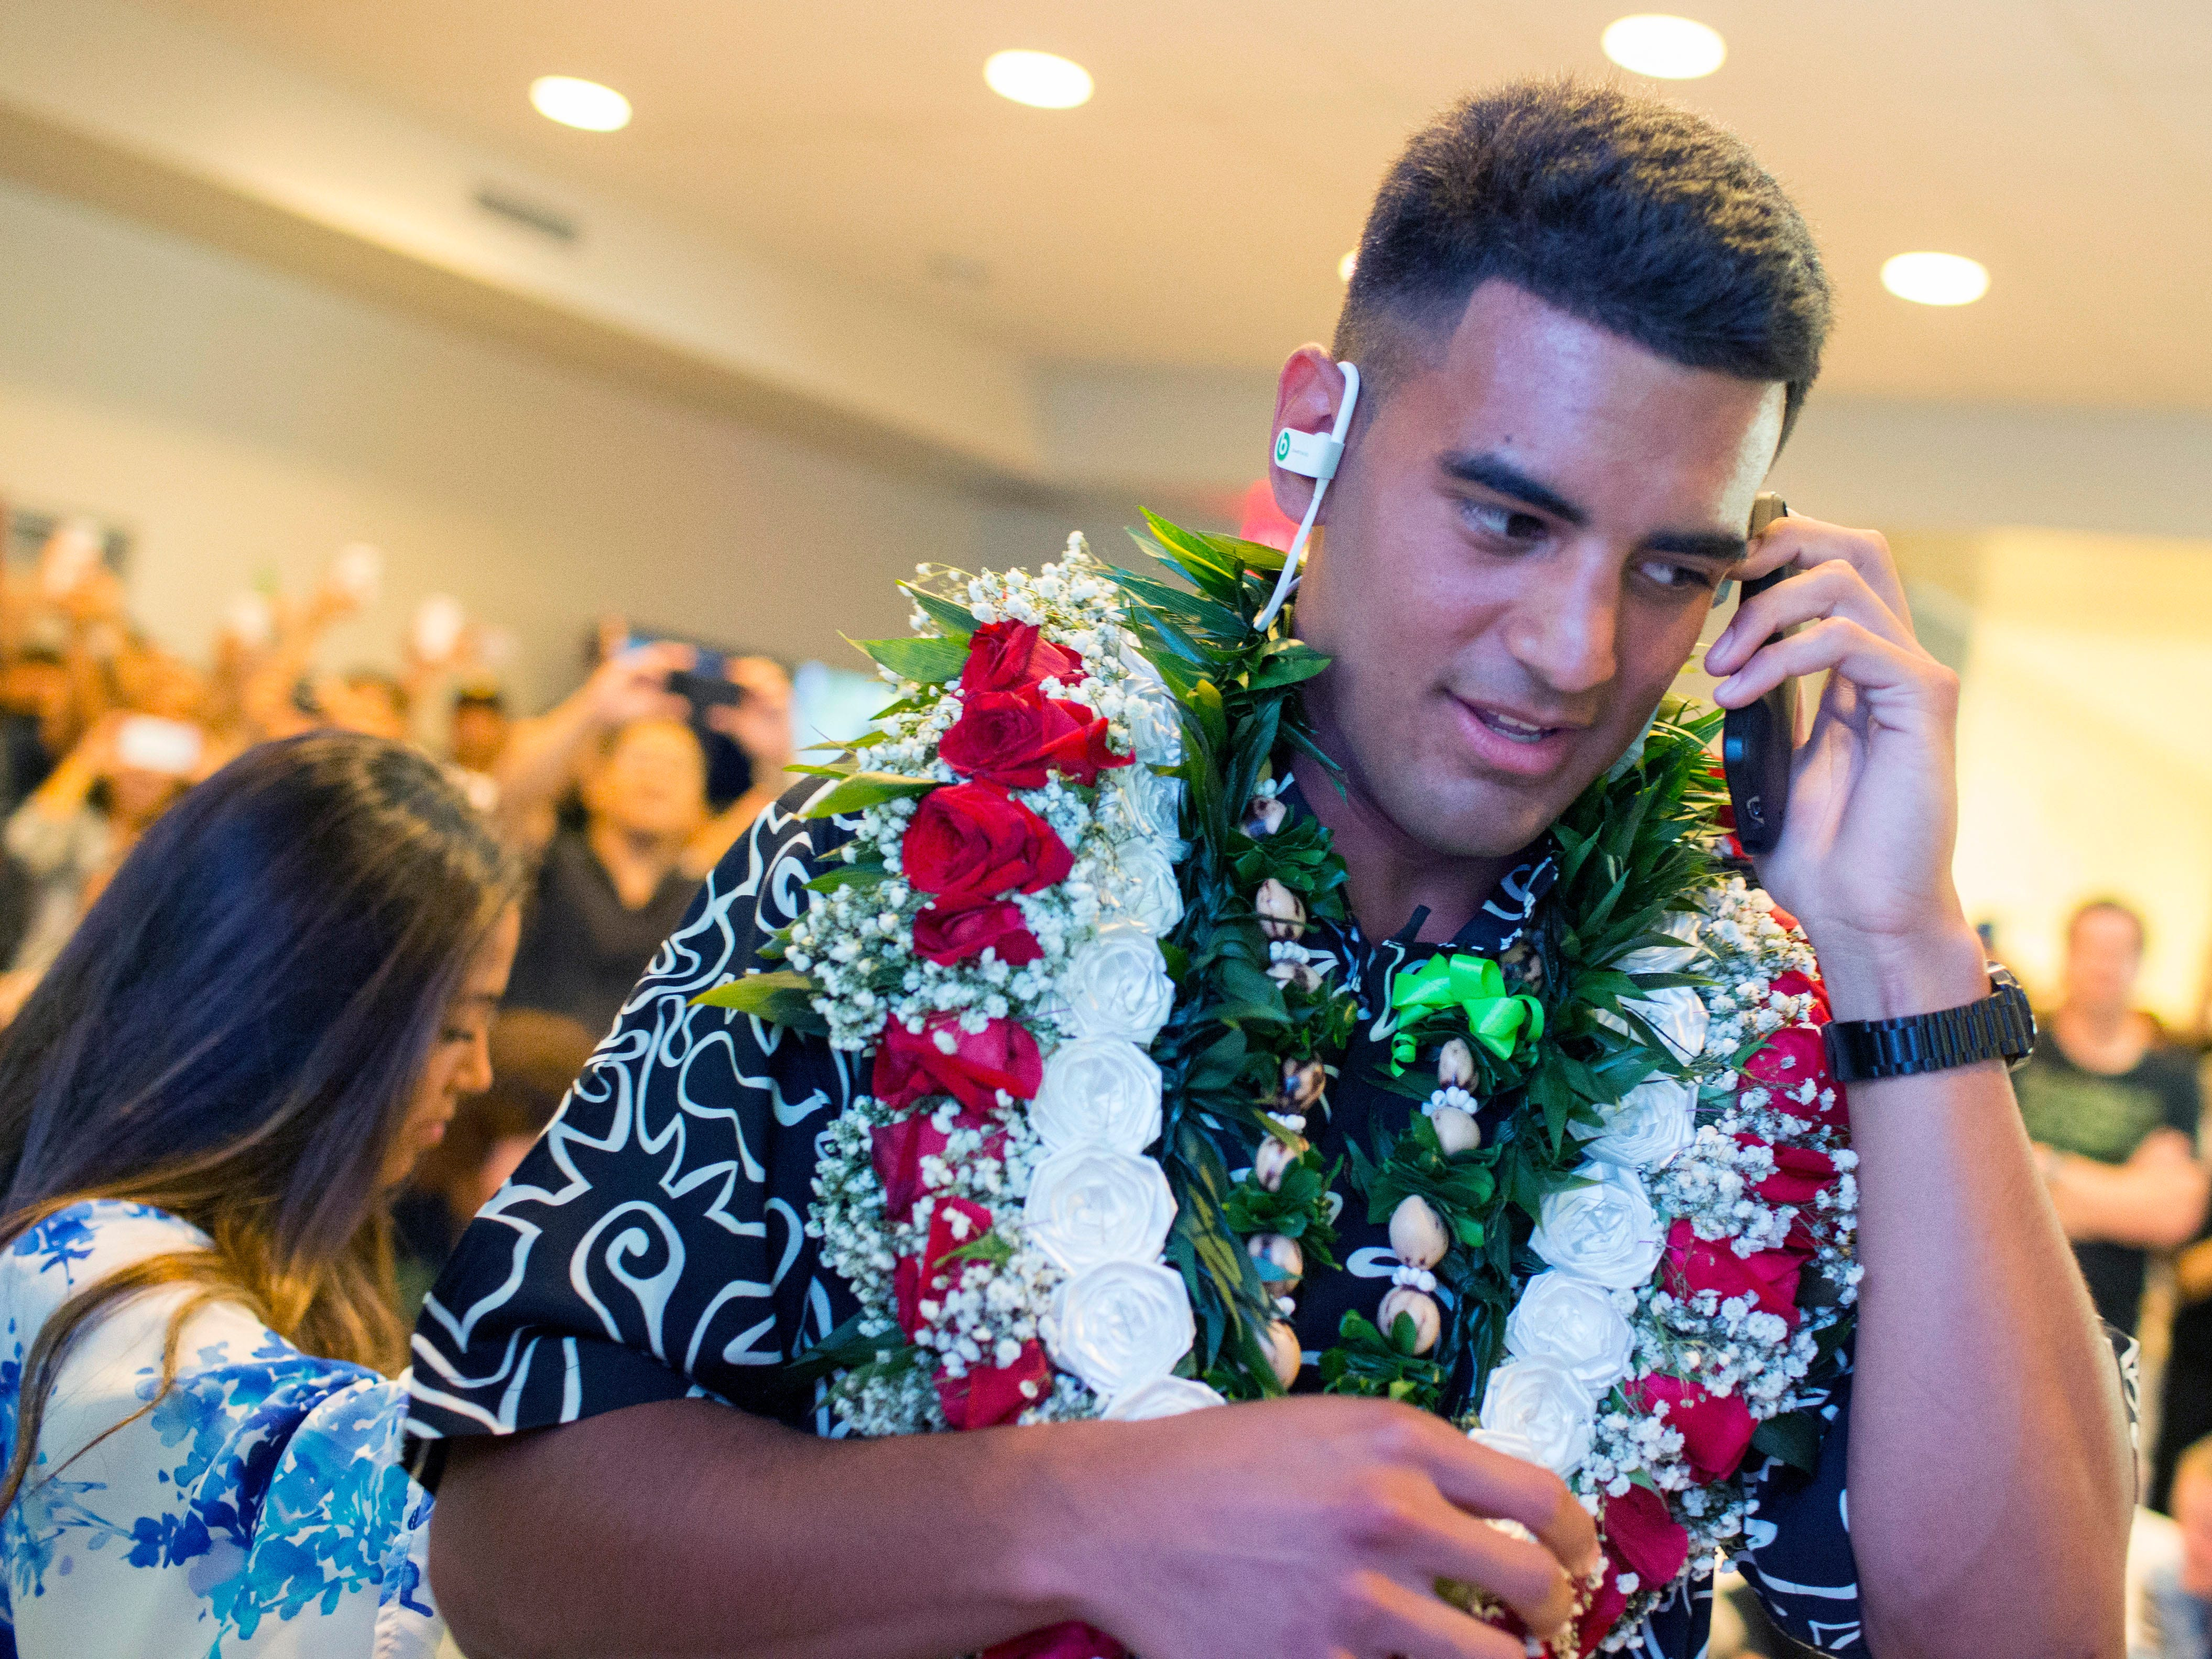 2015: Marcus Mariota (No. 2 overall) Quarterback, Oregon  Given the way Jameis Winston has fared in Tampa, Mariota has been a fine pick. He needs to stay healthy and get another quality weapon or two to increase playmaking, but Mariota can win games and rarely is the reason for a loss.